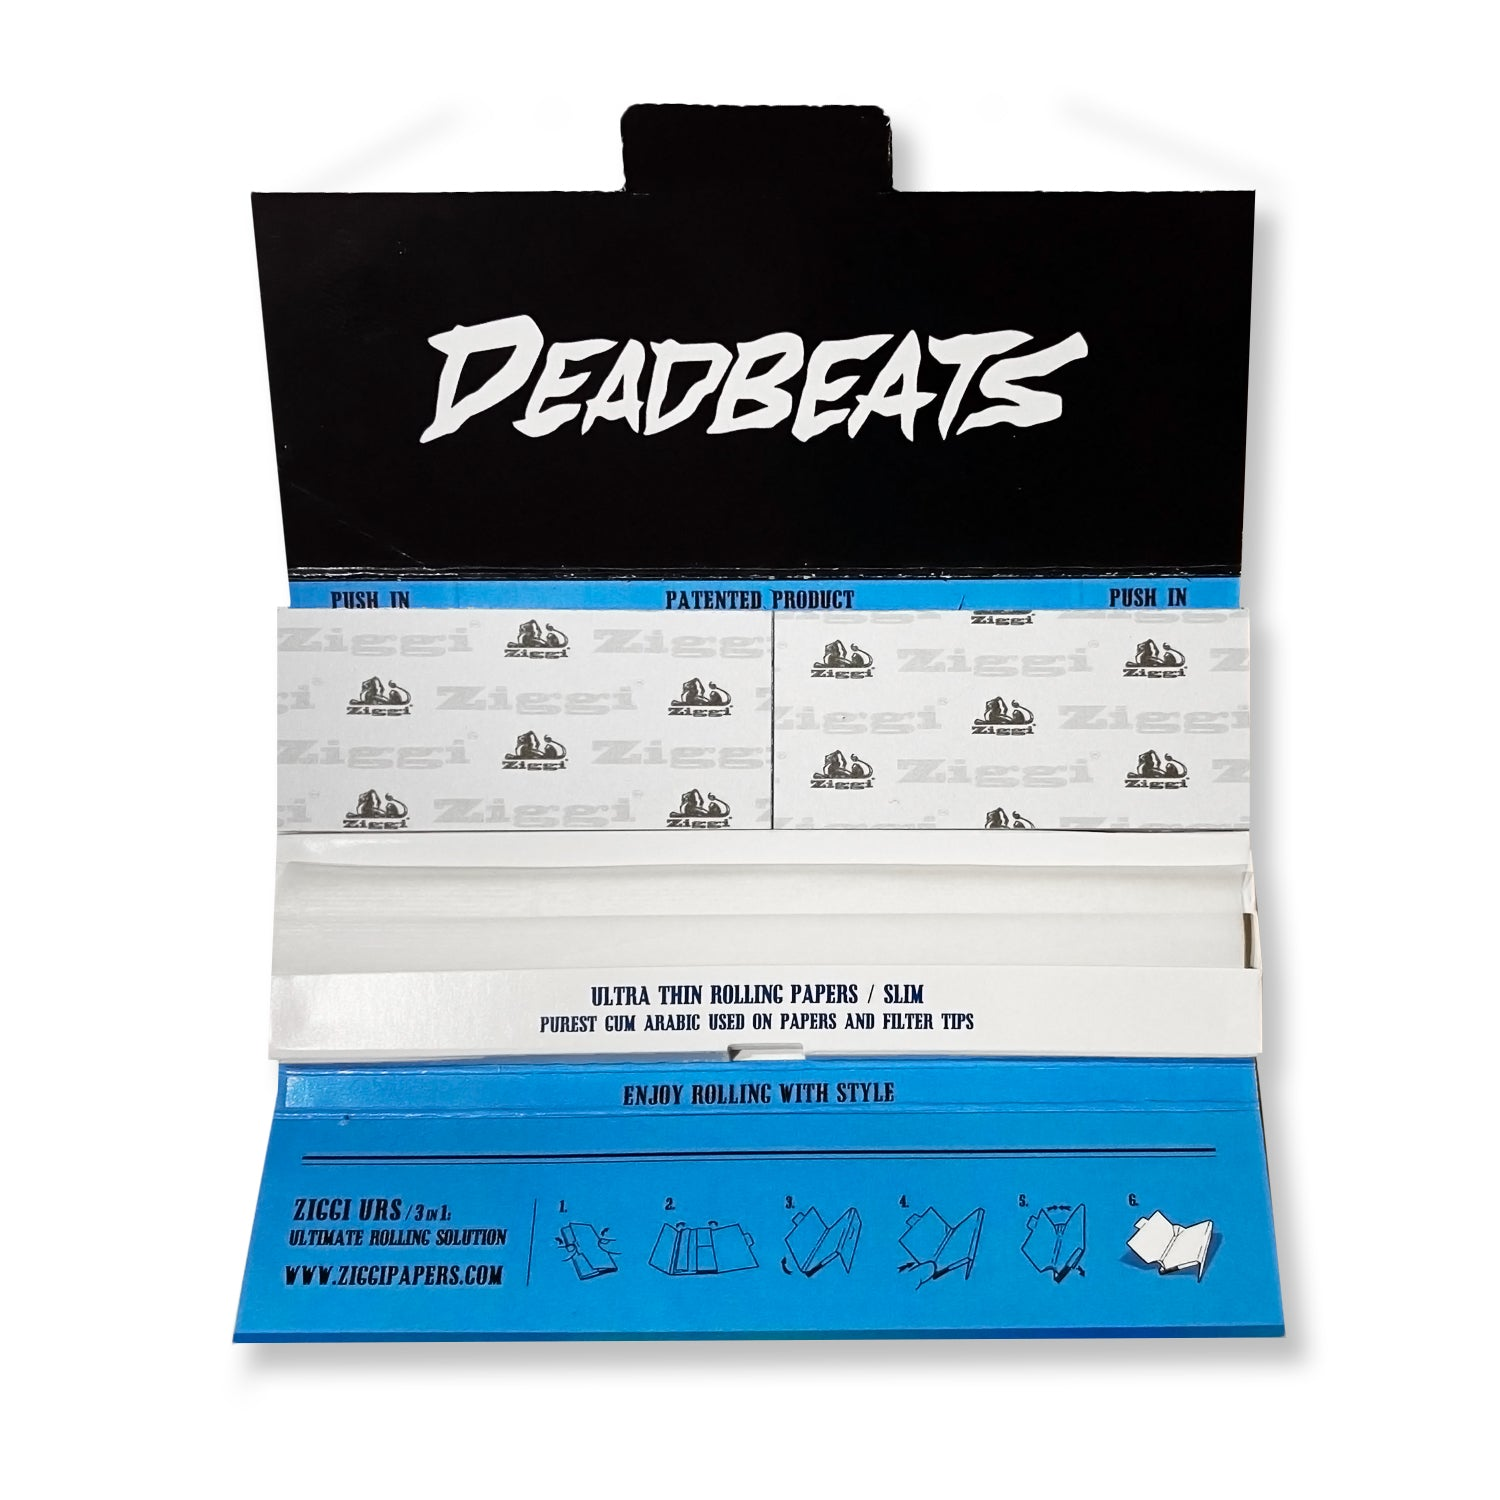 ZD - Deadbeats - Premium Rolling Papers - Edition #1